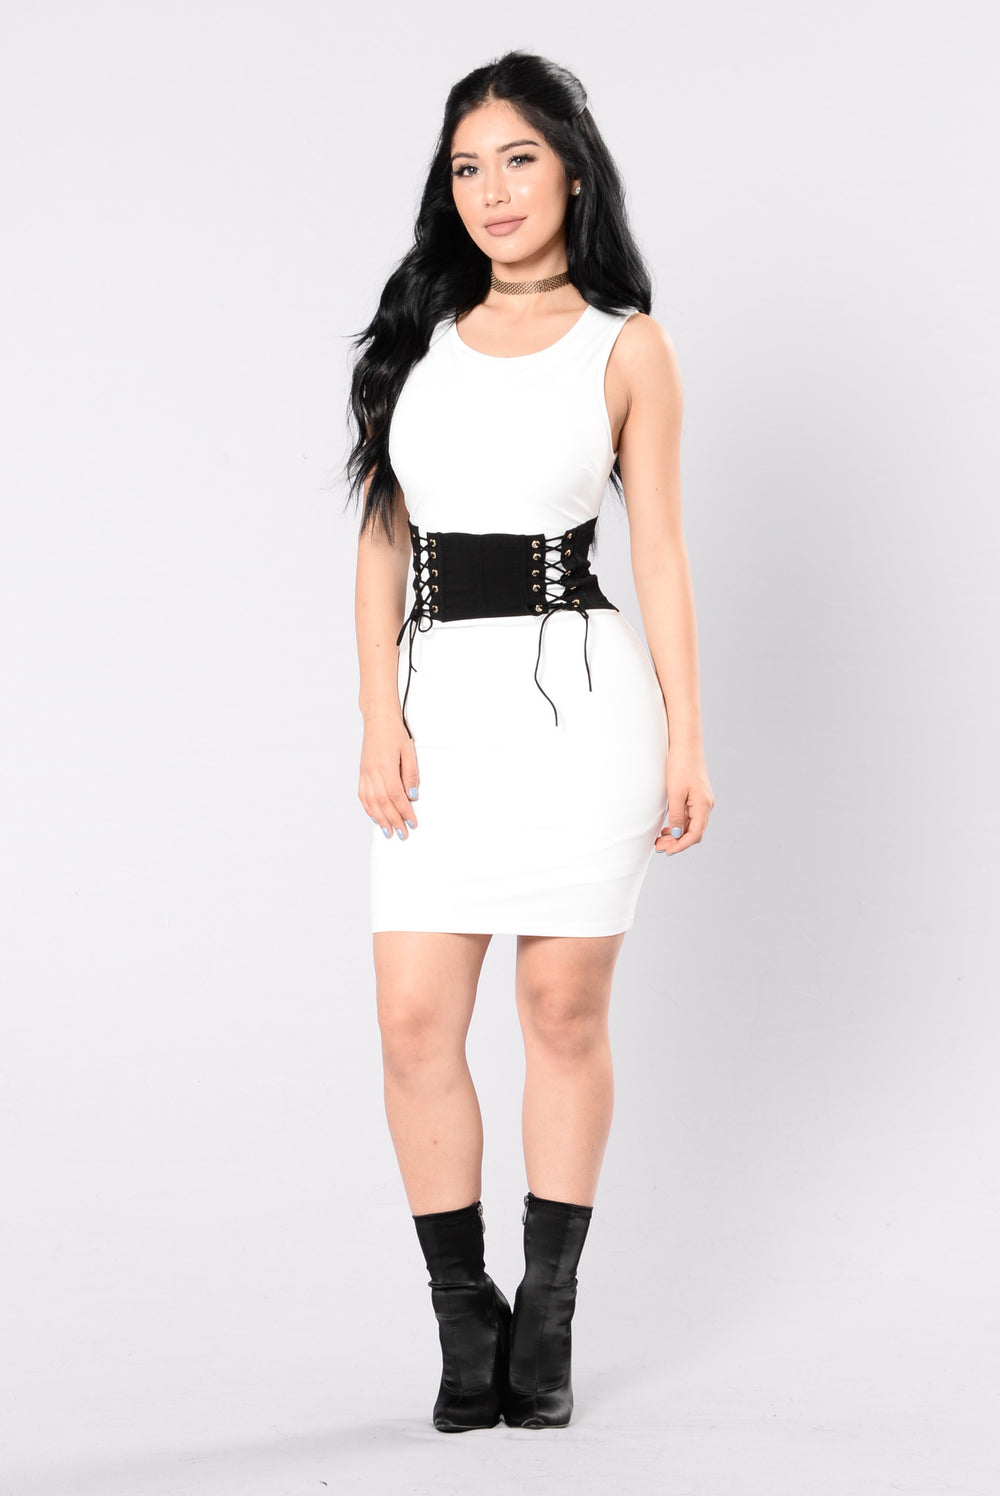 Come Here Rude Boy Dress - Off White/Black